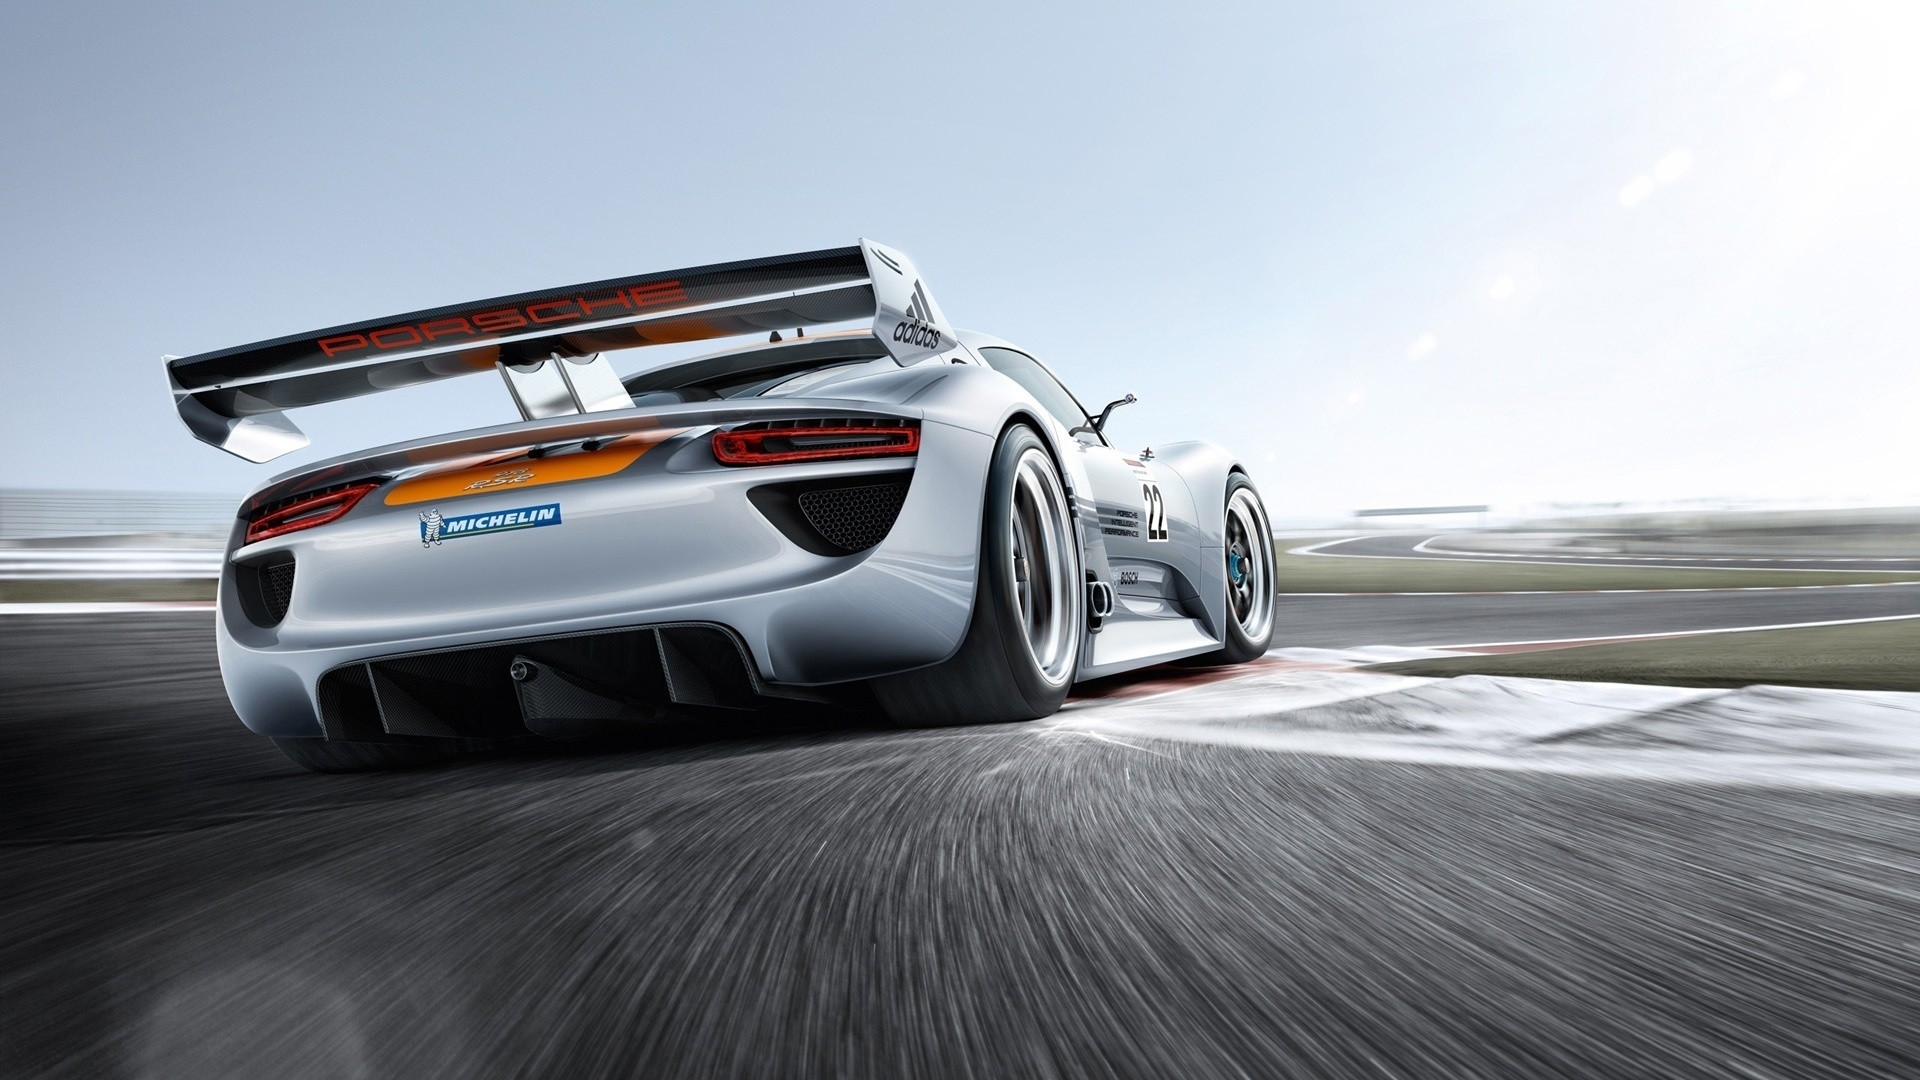 White cars vehicles racing porsche 918 modified 1920x1080 racing ...